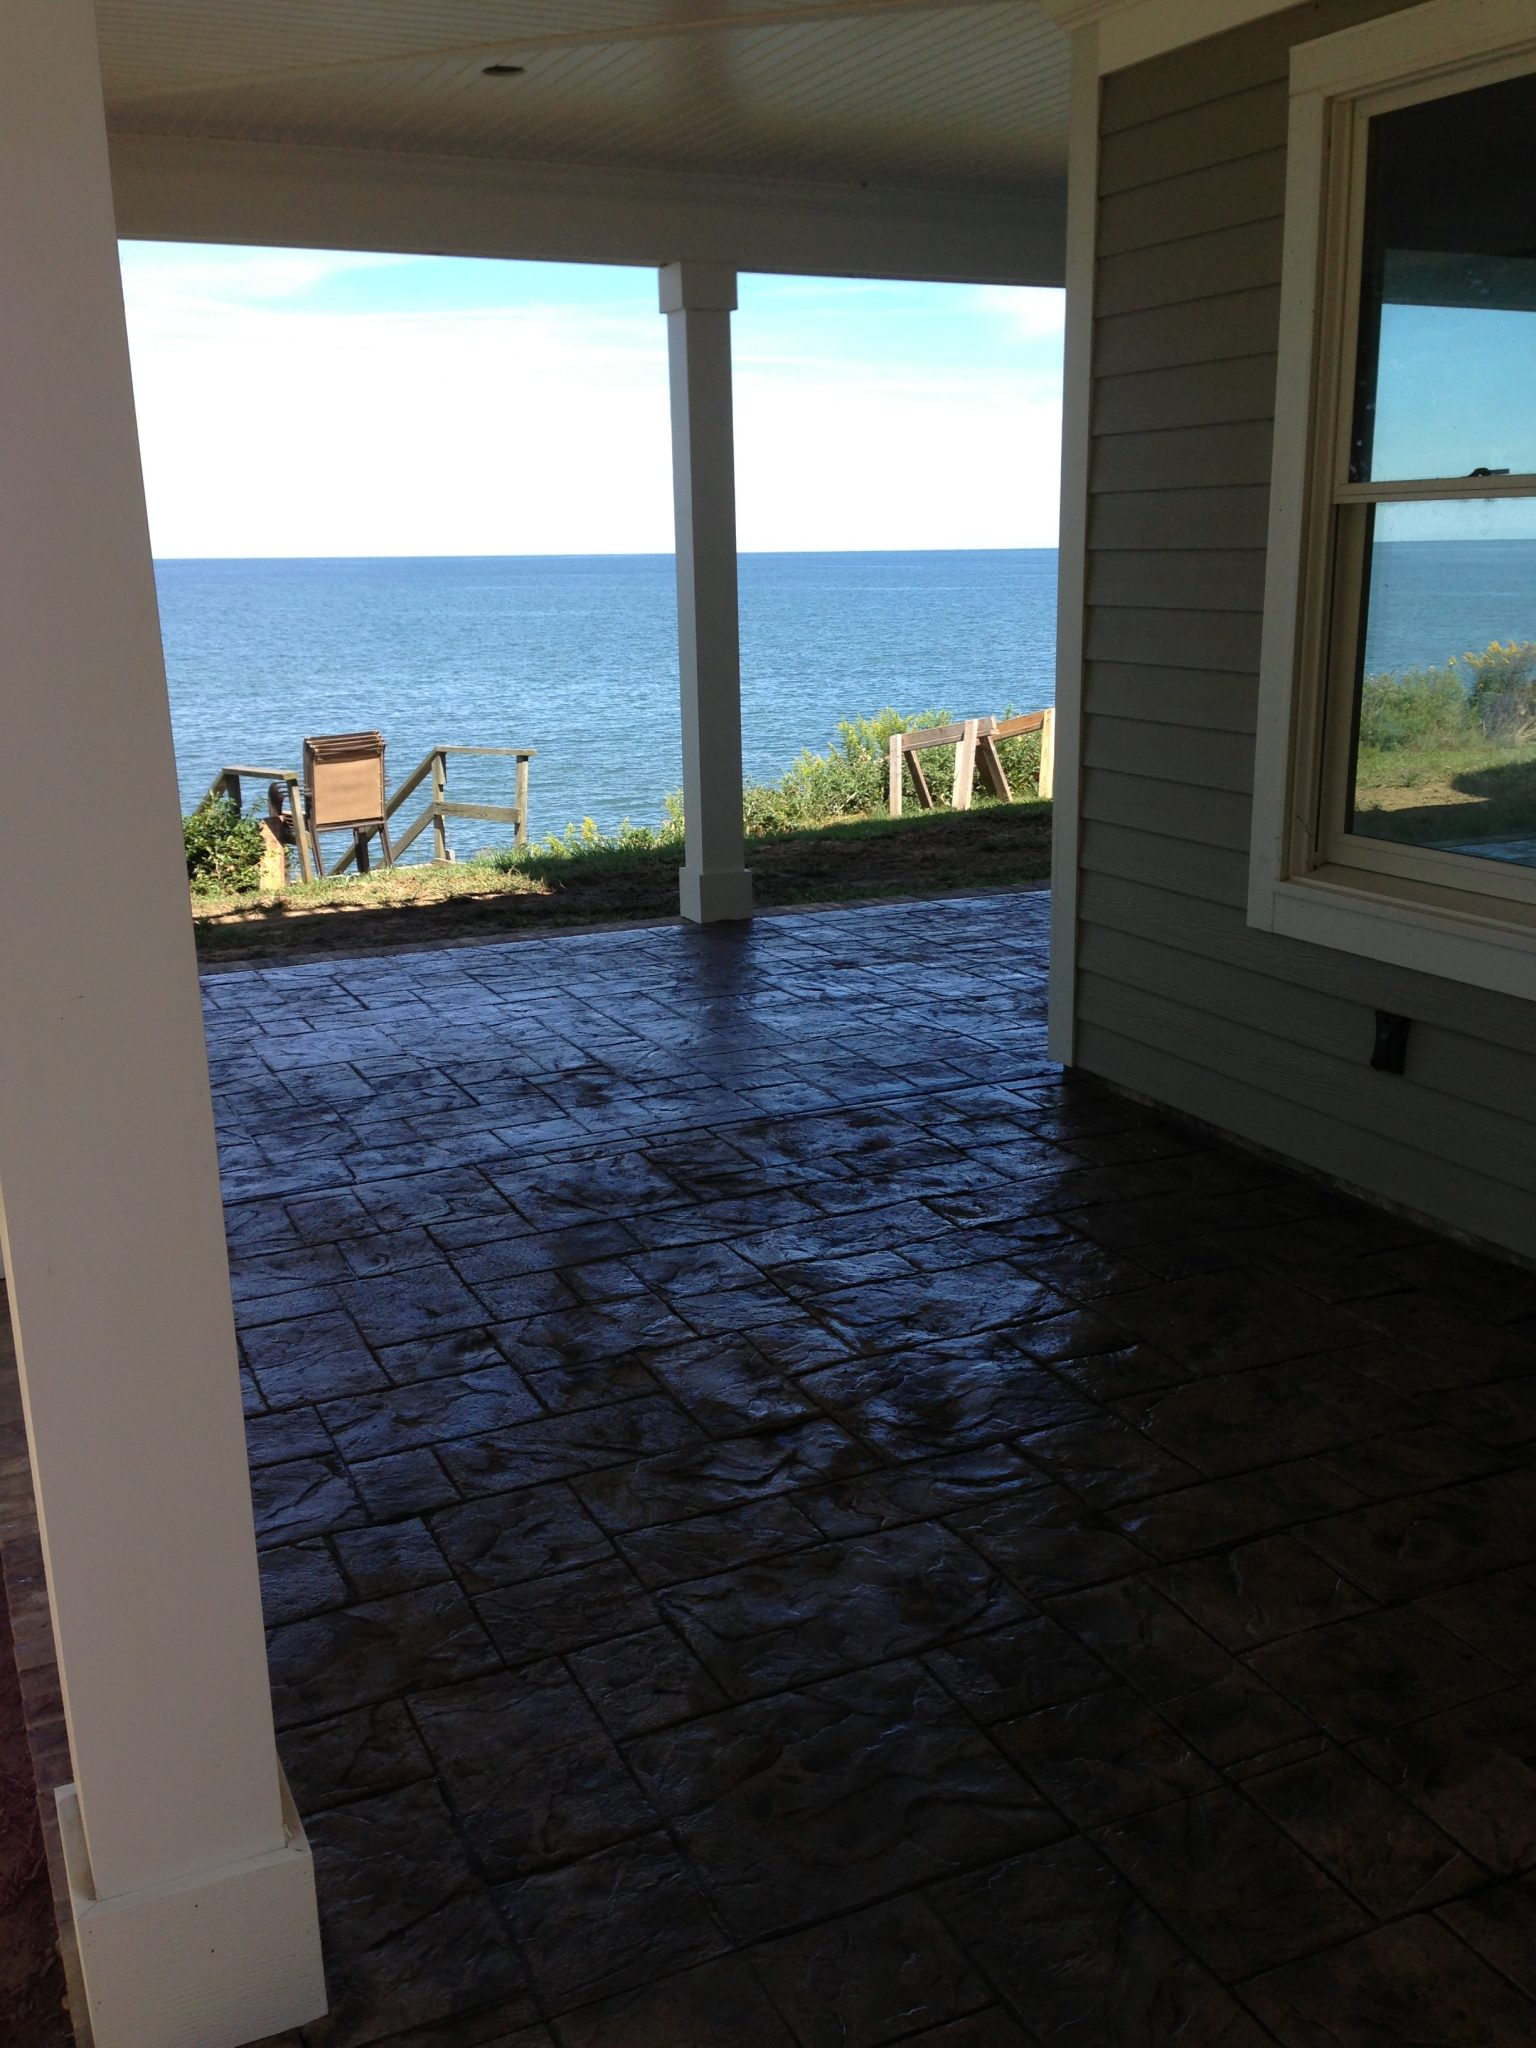 Stamped ashlar slate porches at a lake house in Madison, Ohio.